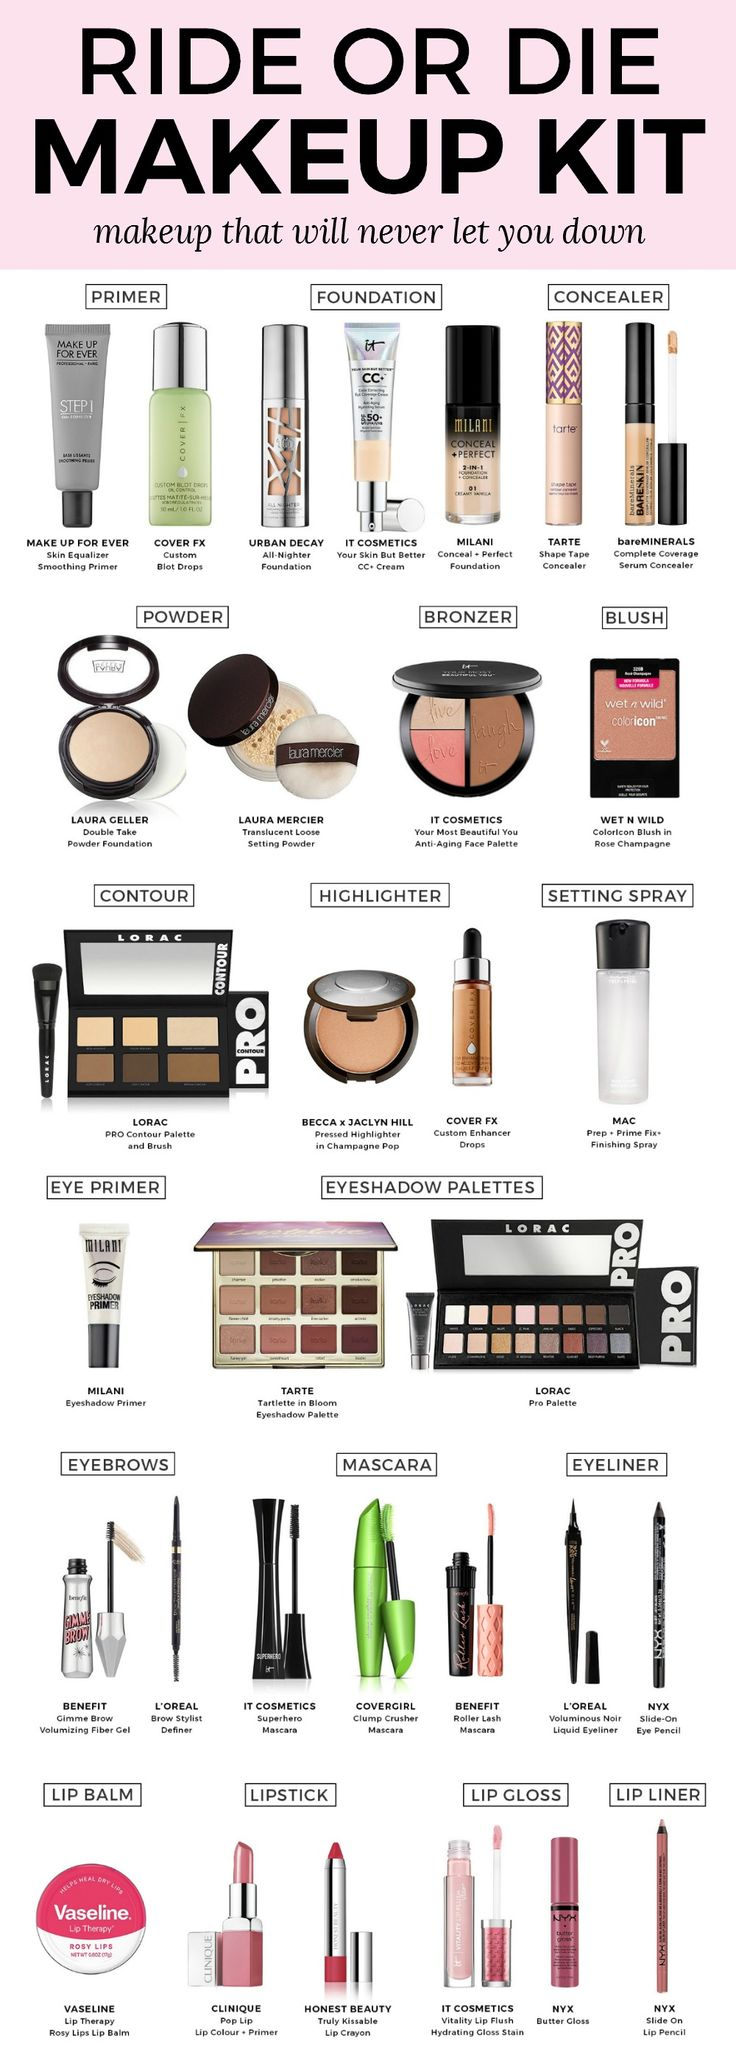 My Ride or Die Makeup Kit: Makeup That Will Never Let You Down | A comprehensive...